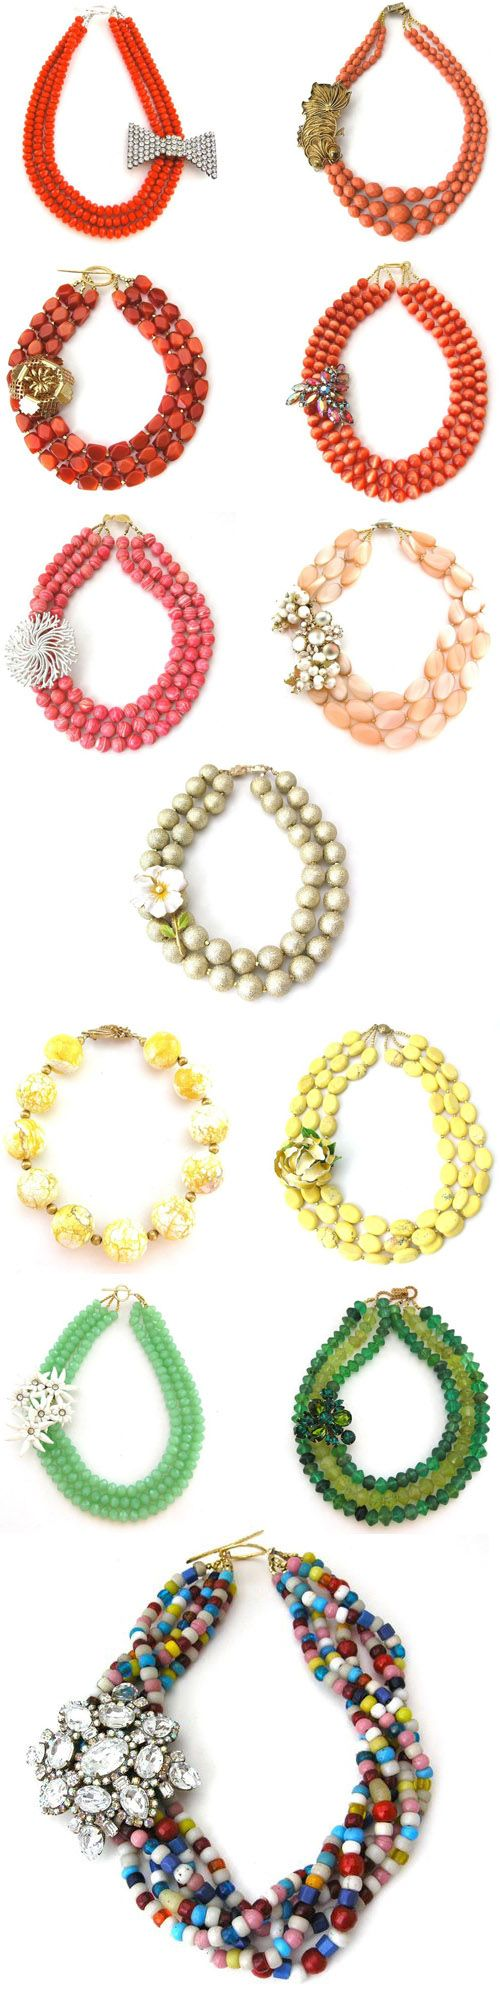 bead necklaces, jewelery, accessories, fashion, DIY crafts